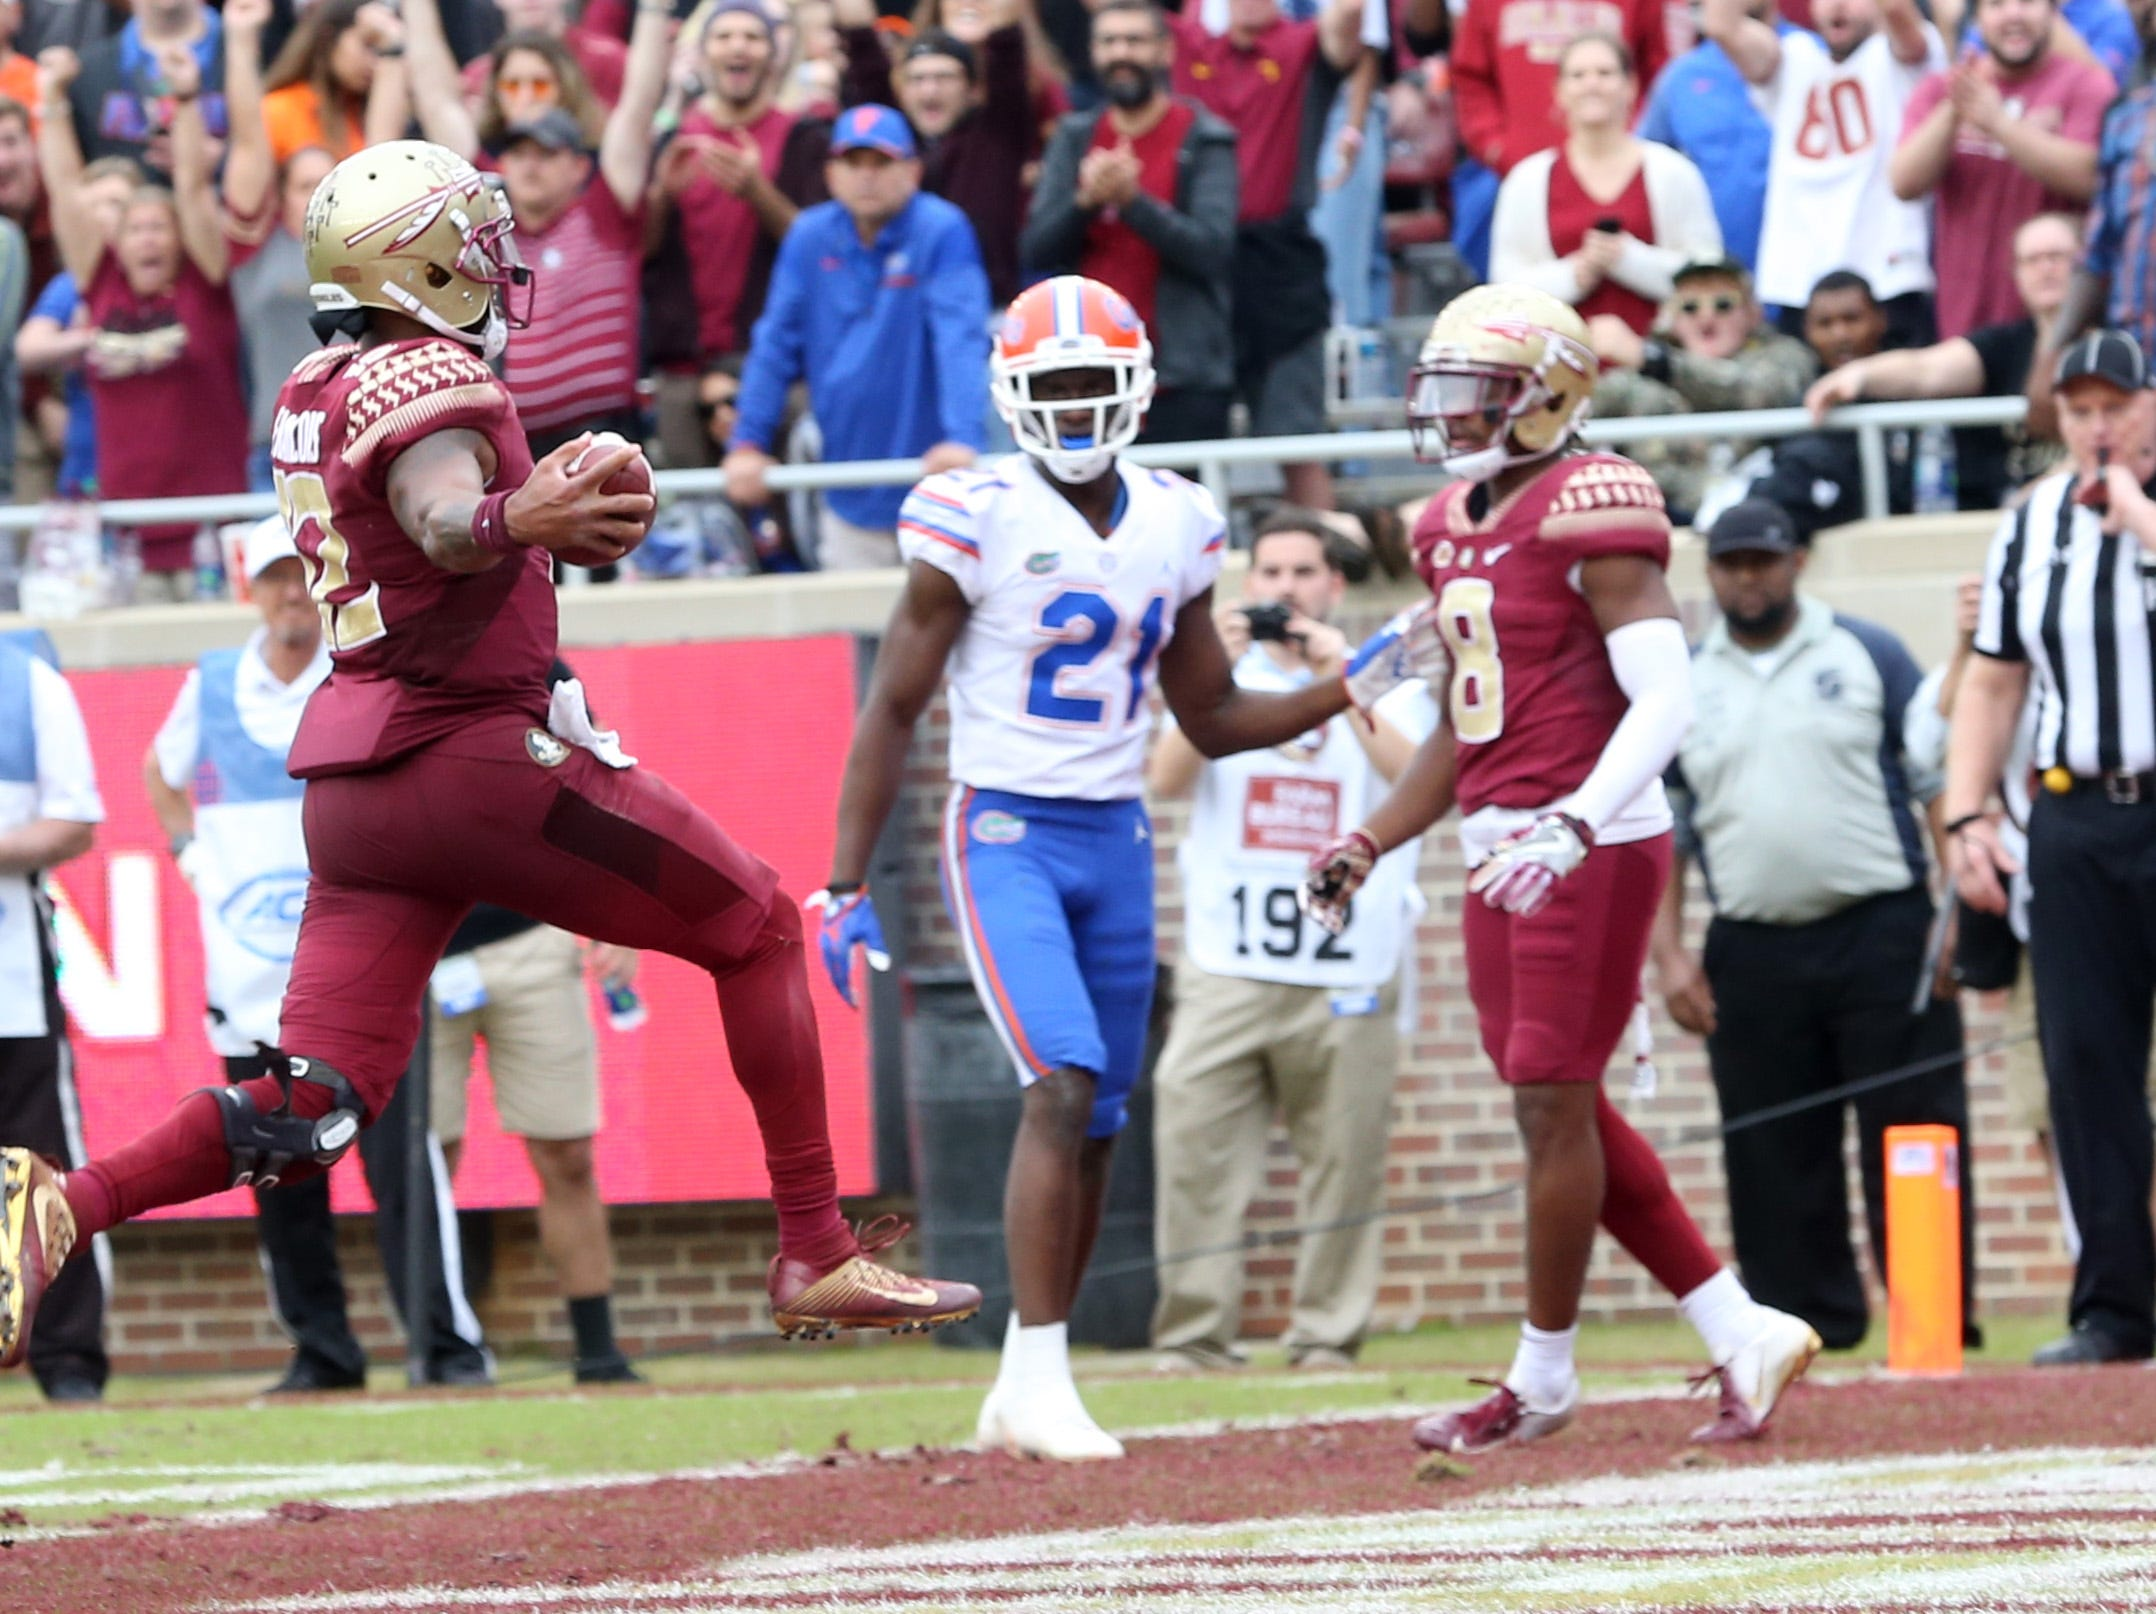 Florida State Seminoles quarterback Deondre Francois (12)  runs in for a touchdown as the Florida State Seminoles take on their rival the Florida Gators in college football at Doak S. Campbell Stadium, Saturday, Nov. 24, 2018.